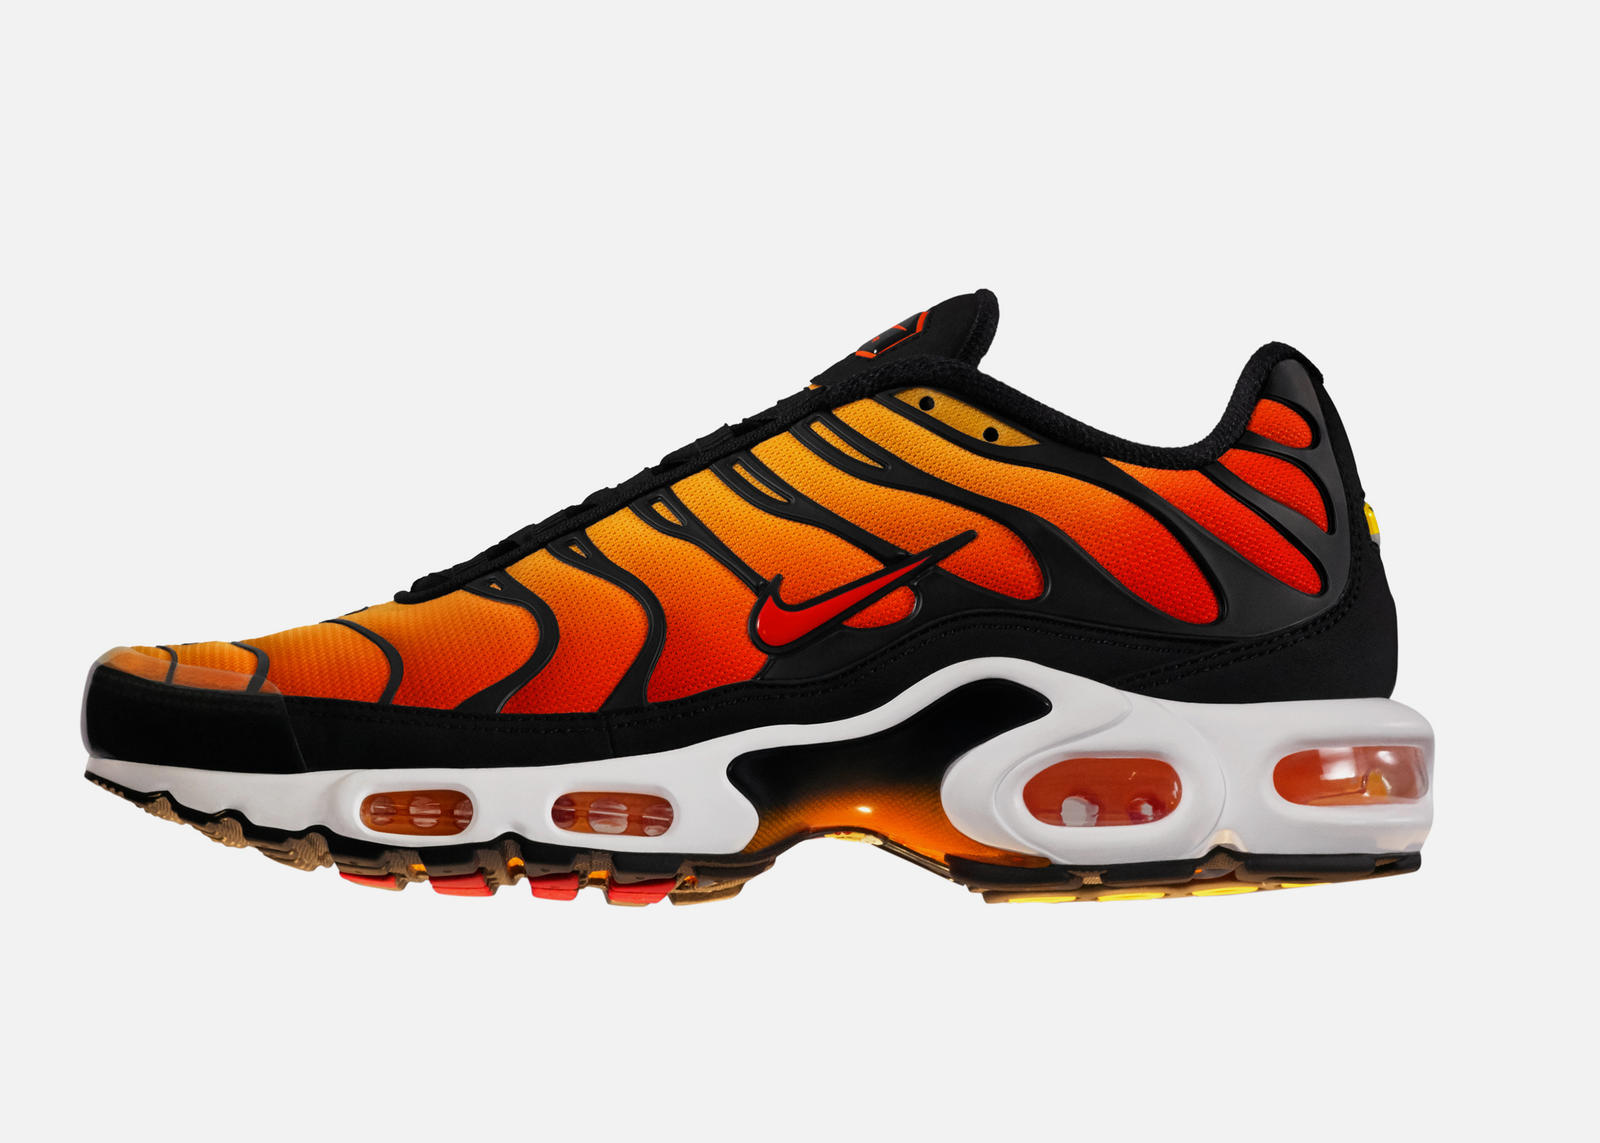 83a5369a4776 The Untold Story of the Nike Air Max Plus - Nike News